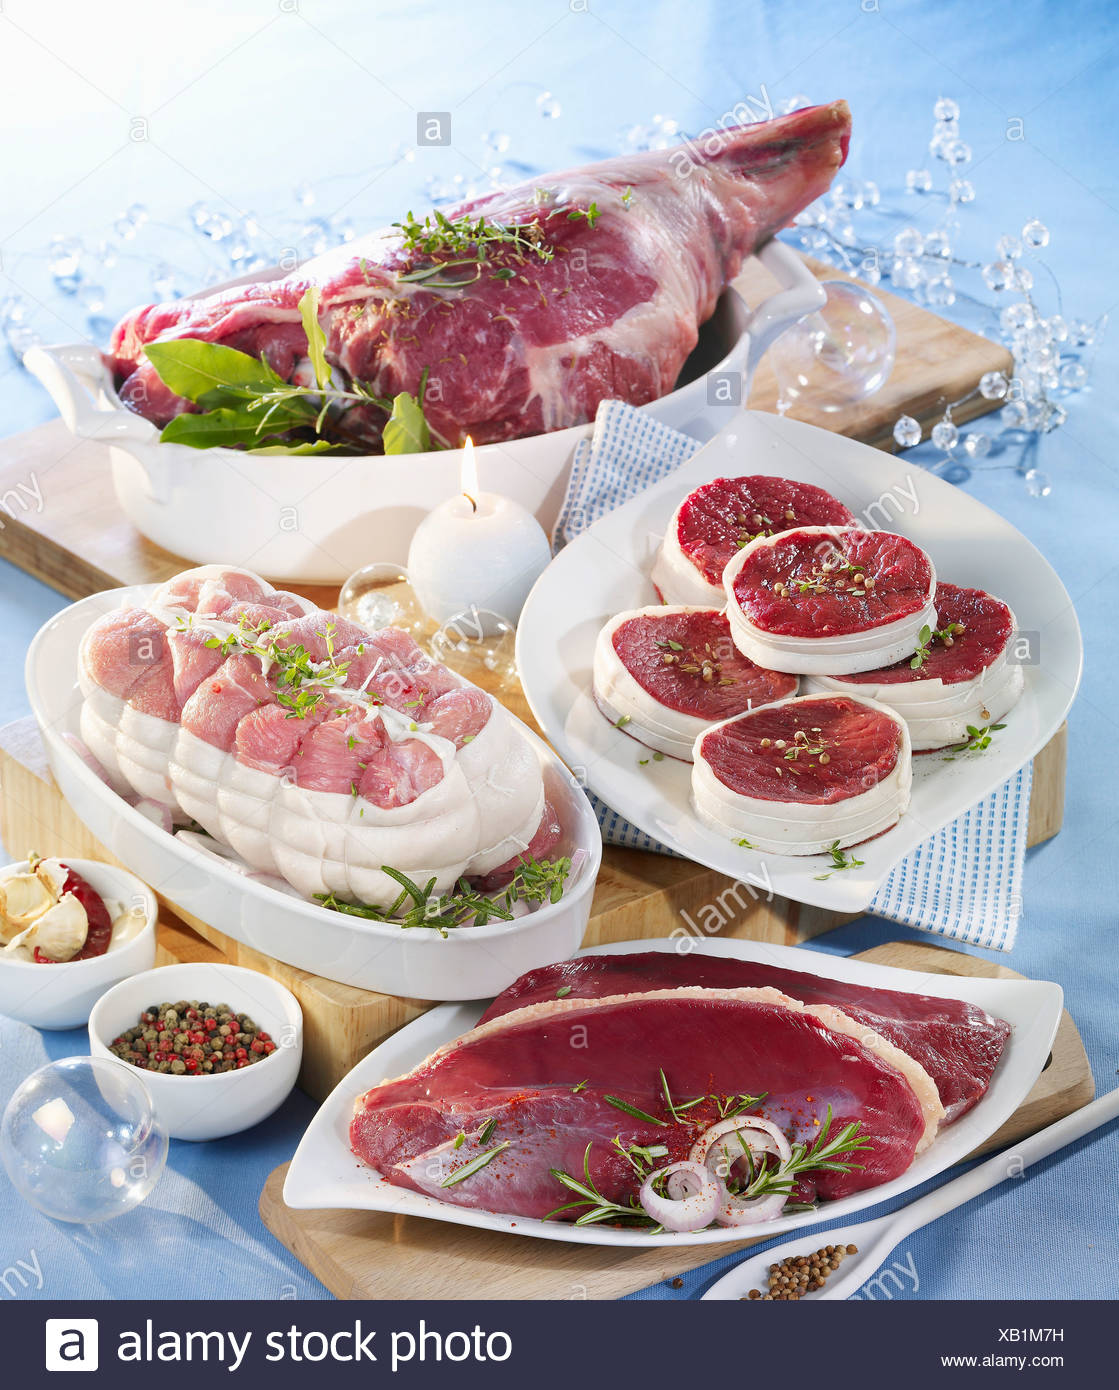 Assorted raw meats - Stock Image